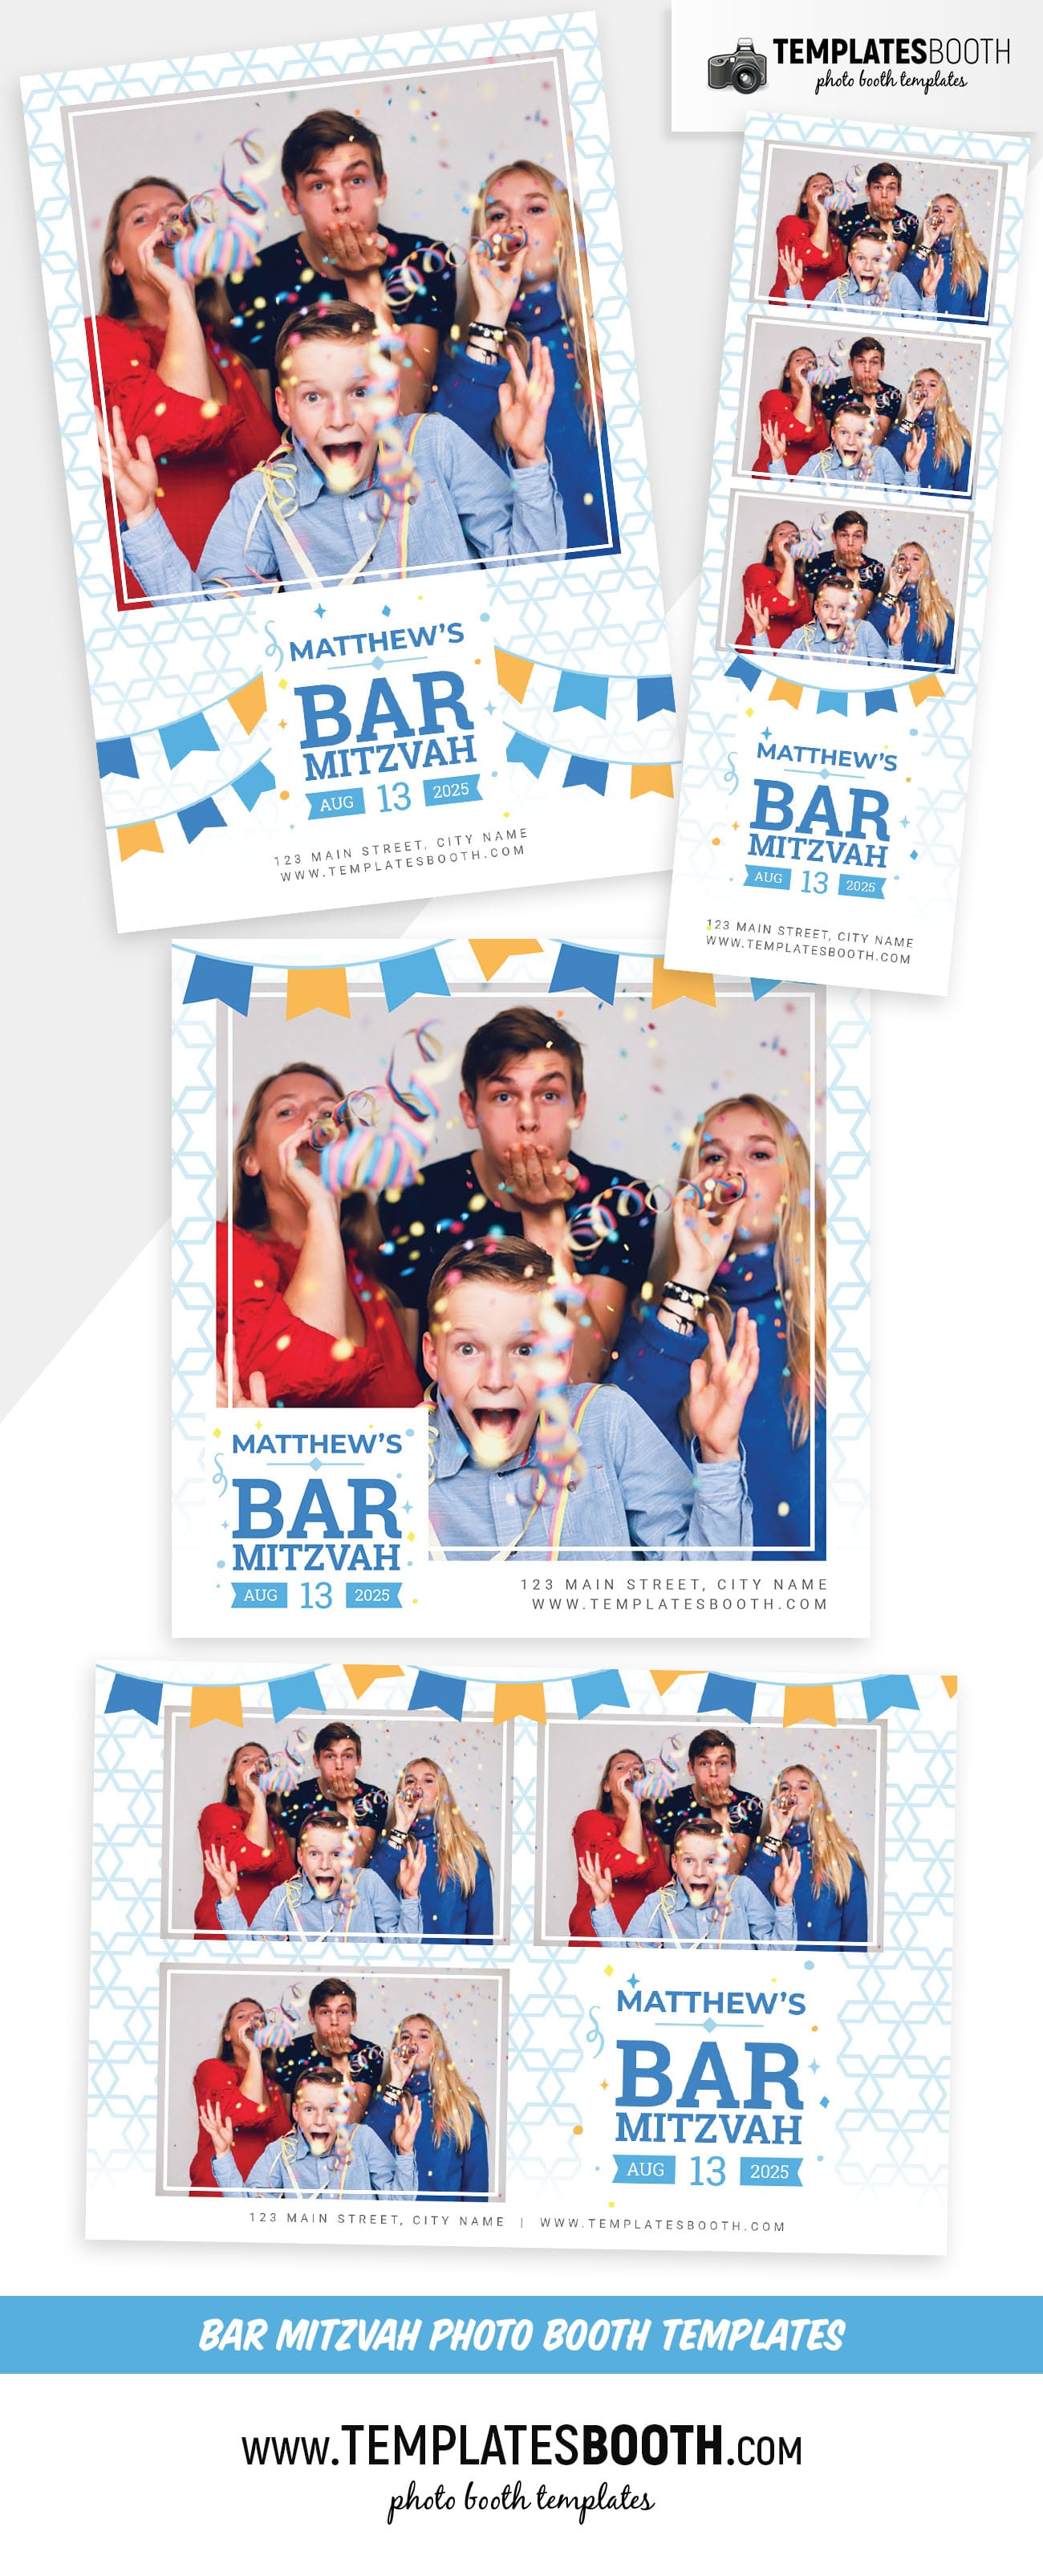 Bar Mitzvah Photo Booth Template (Full Preview)